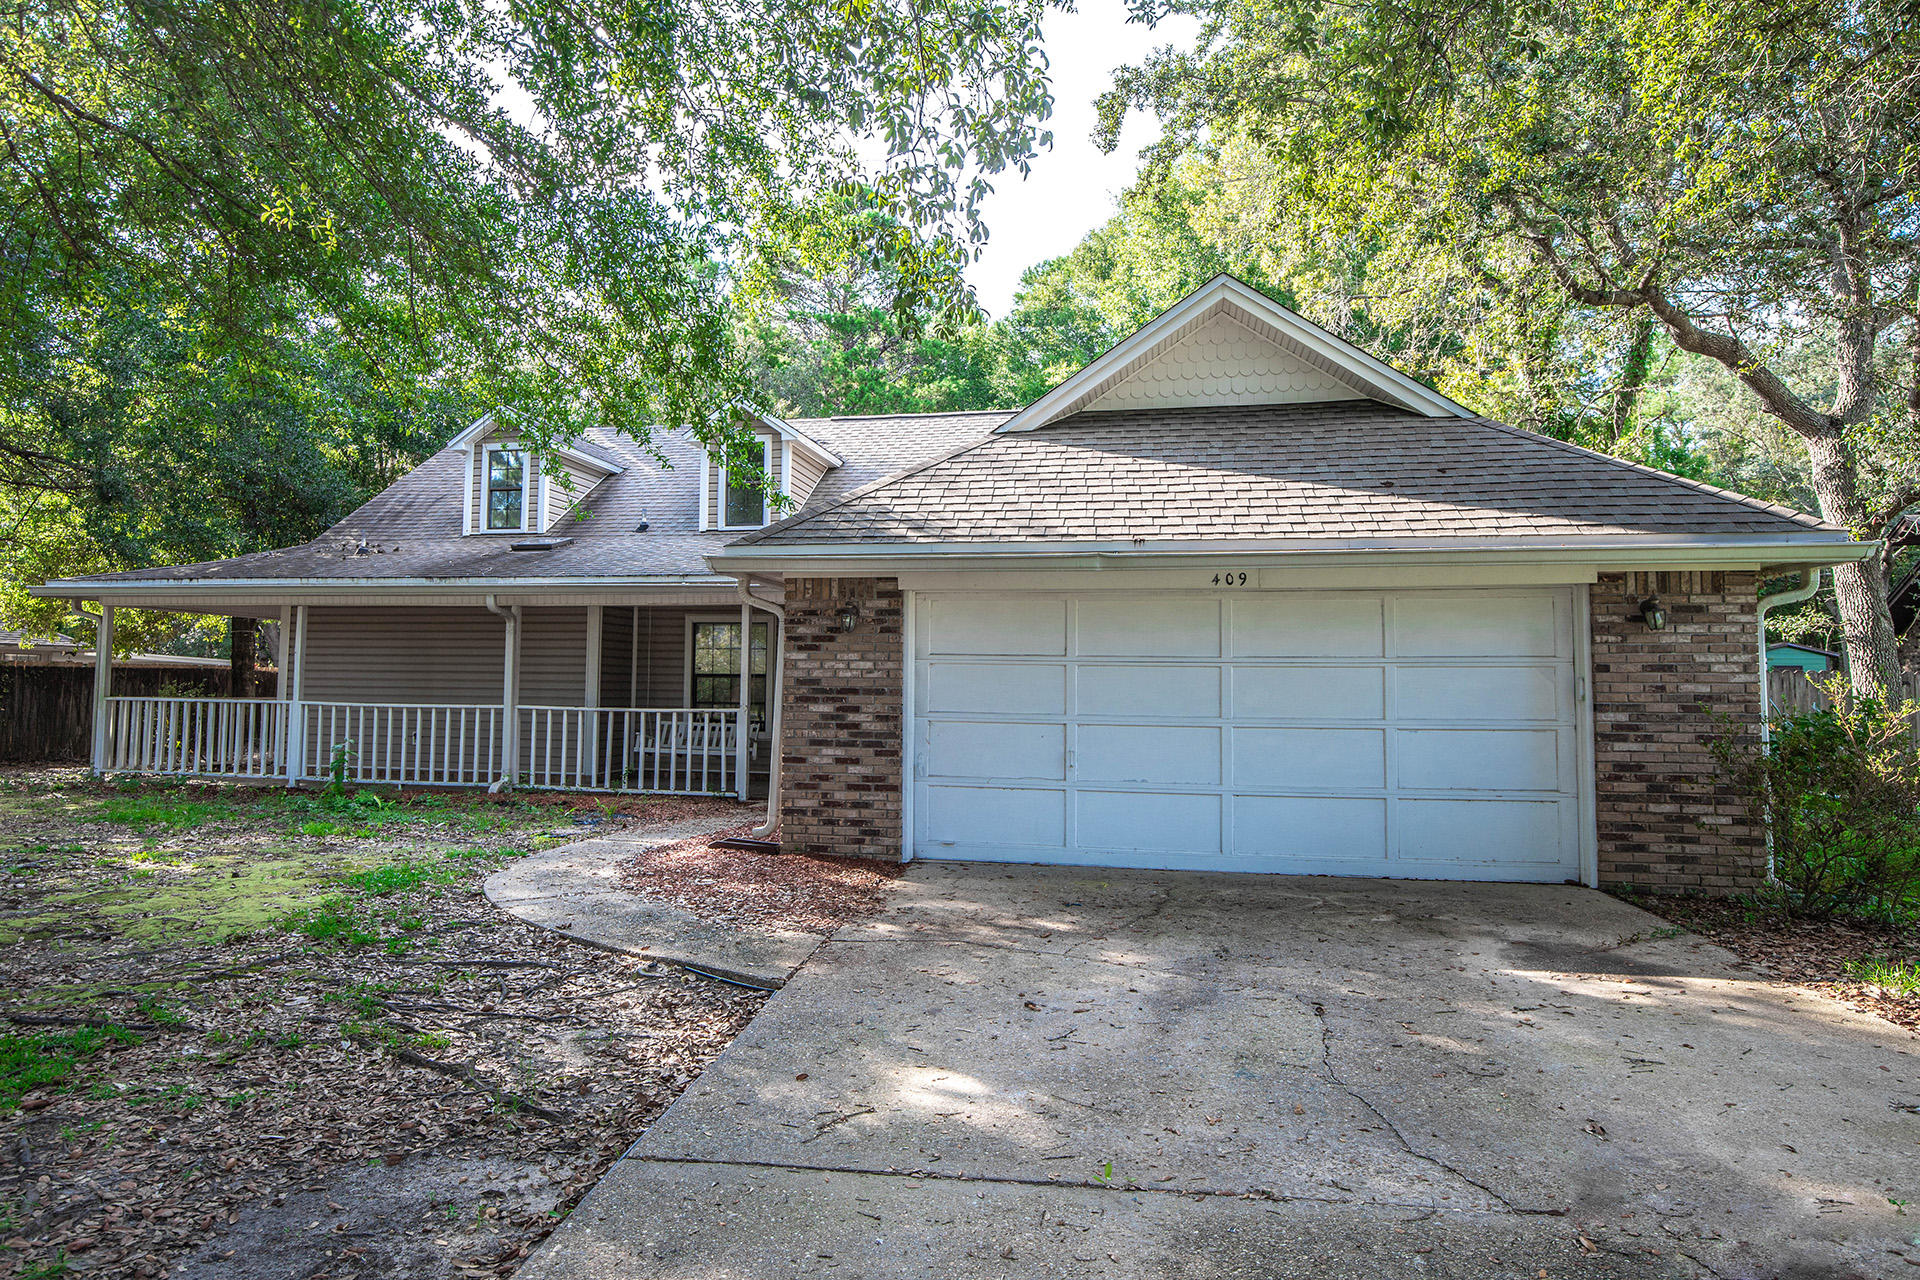 Photo of home for sale at 409 Bimini, Niceville FL